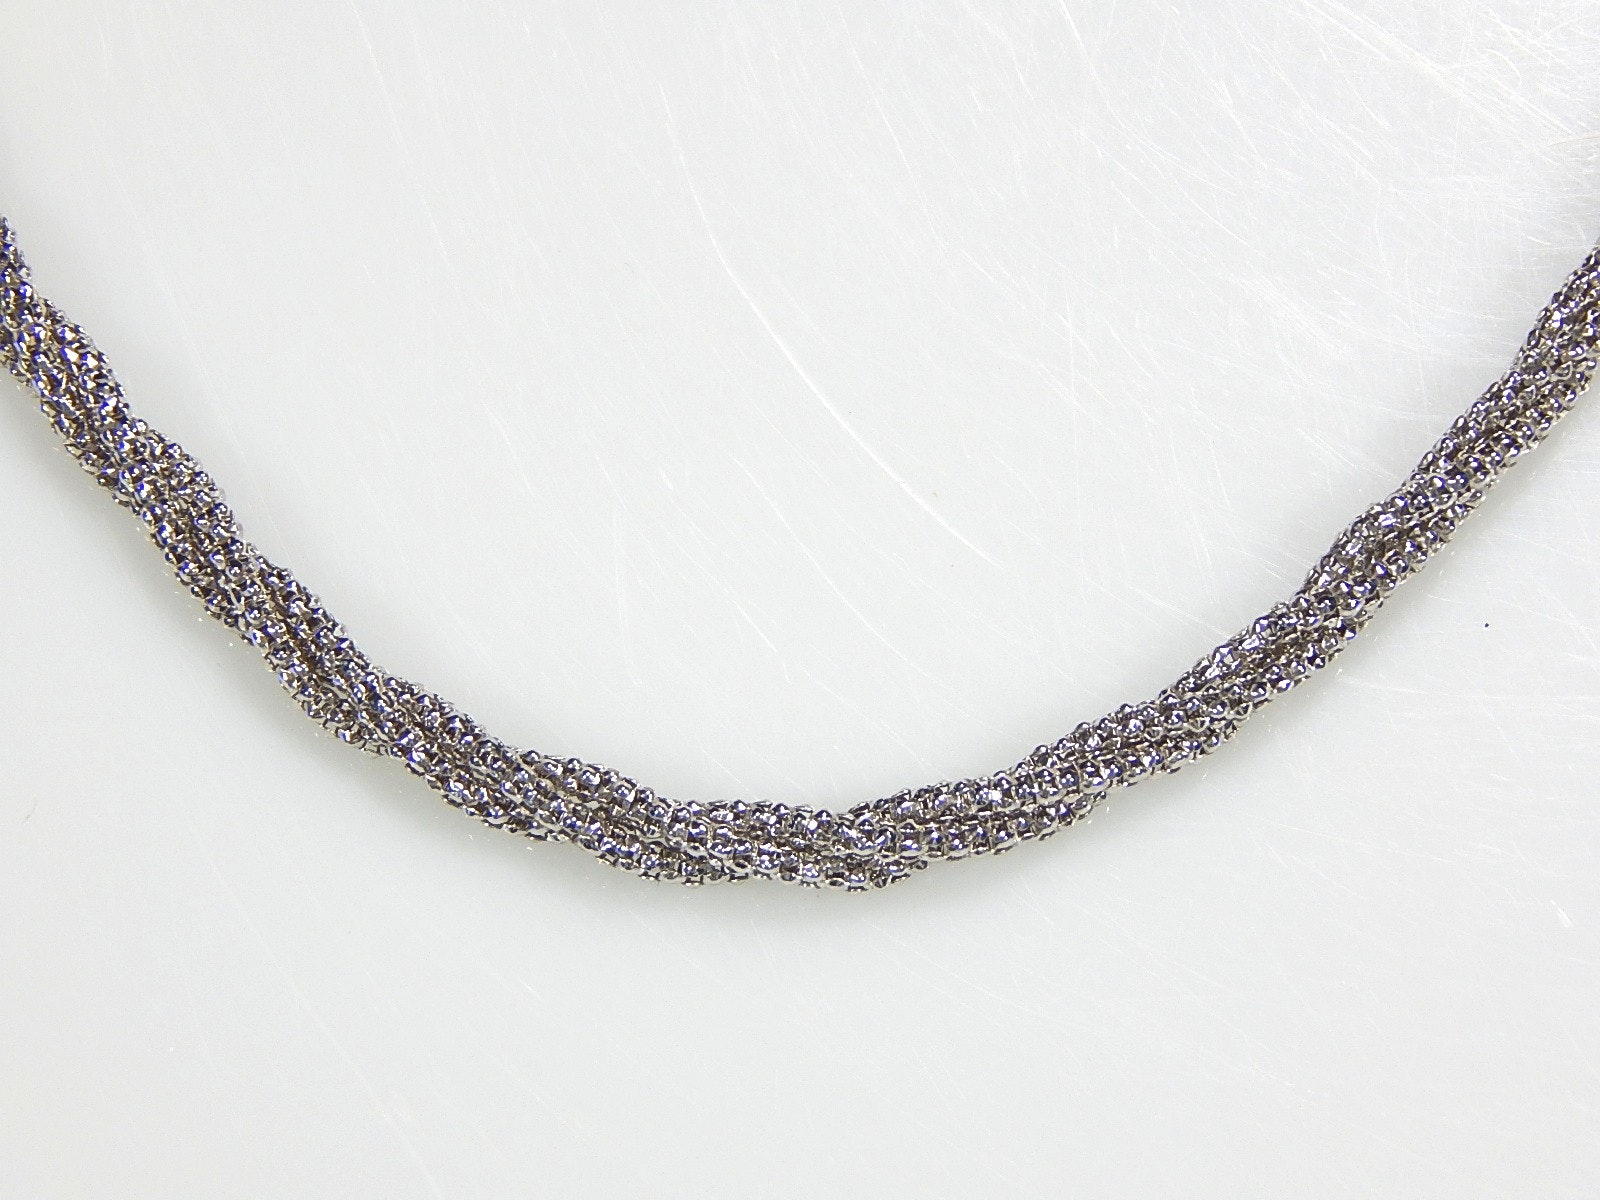 14K White Gold Double Strand Twist Necklace